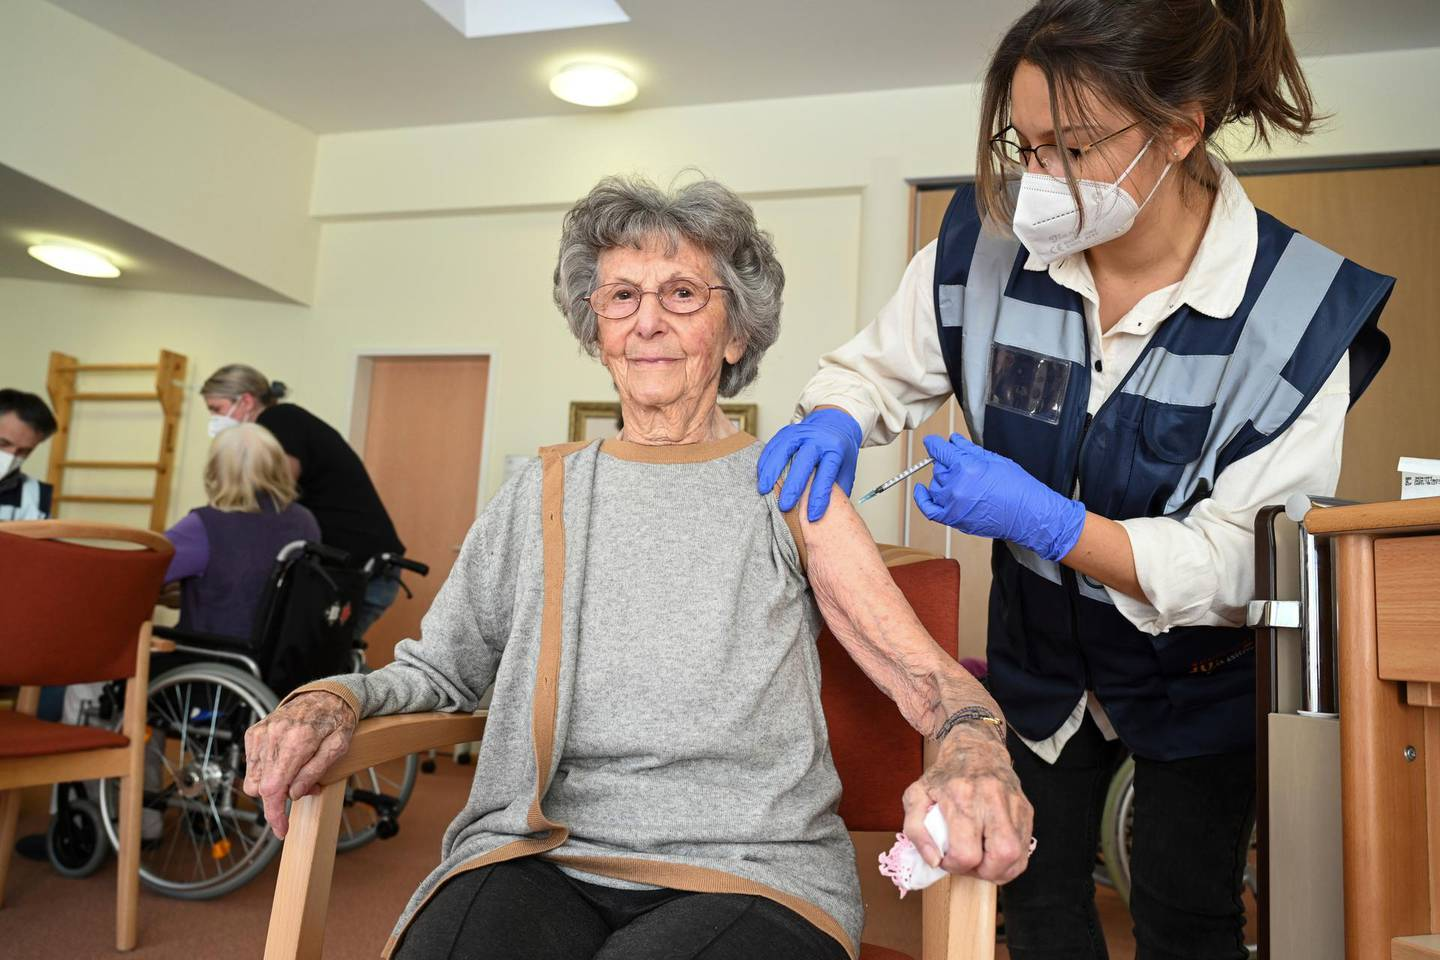 Medical student Mara Karcher vaccinates a resident Ella Holdenried of  Sankt Verena nursing home in Strassberg, Germany, Wednesday, Dec. 30, 2020. German authorities have reported more than 1,000 coronavirus-related deaths in one day for the first time since the pandemic began. The national disease control center, the Robert Koch Institute, said Wednesday that 1,129 more deaths were reported over the past 24 hours. (Felix Kaestle/dpa via AP)